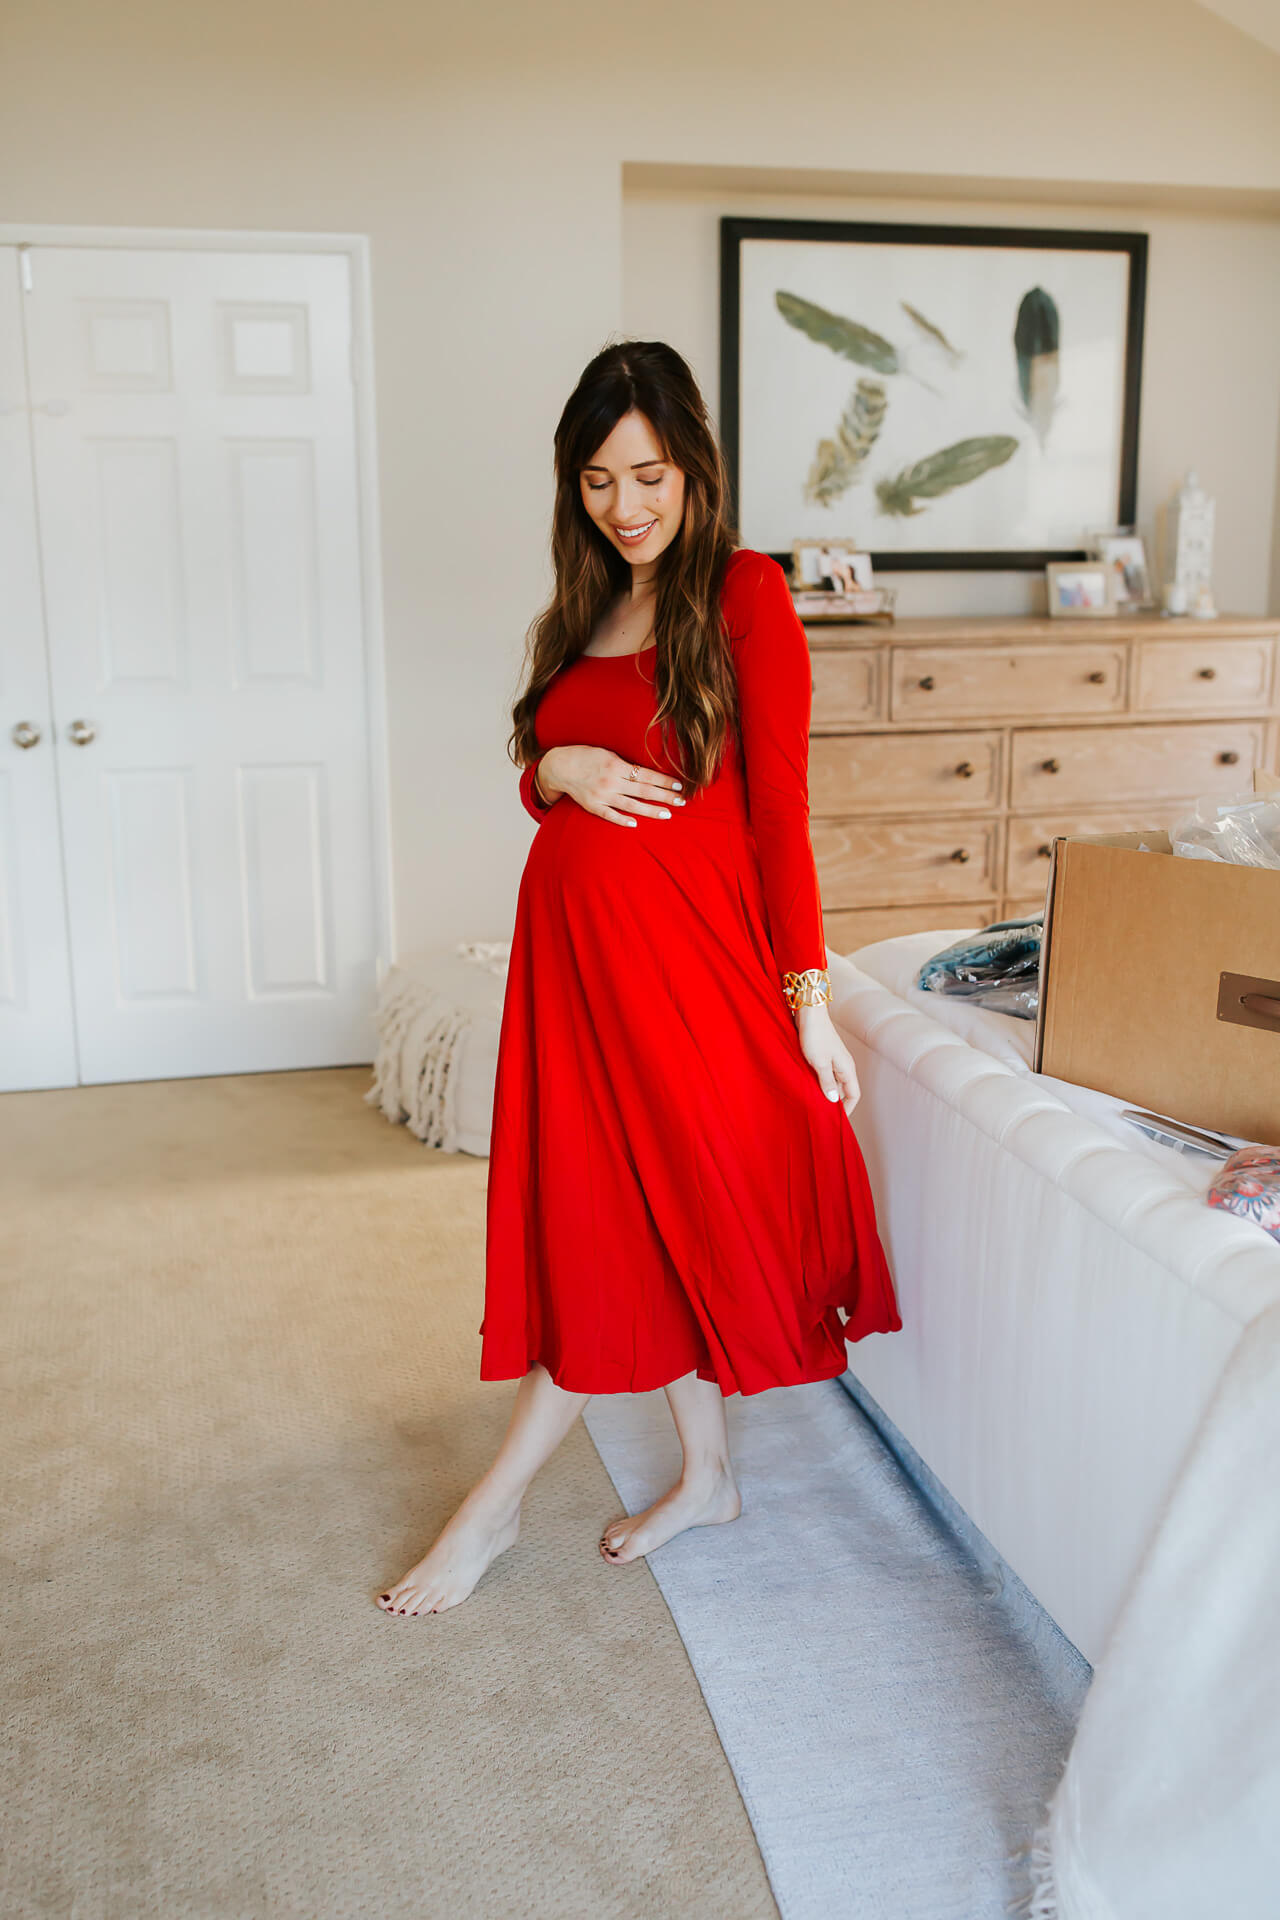 Check out my Trunk Club styling review! These easy holiday outfit ideas are so chic! Love this easy holiday outfits! - M Loves M @marmar